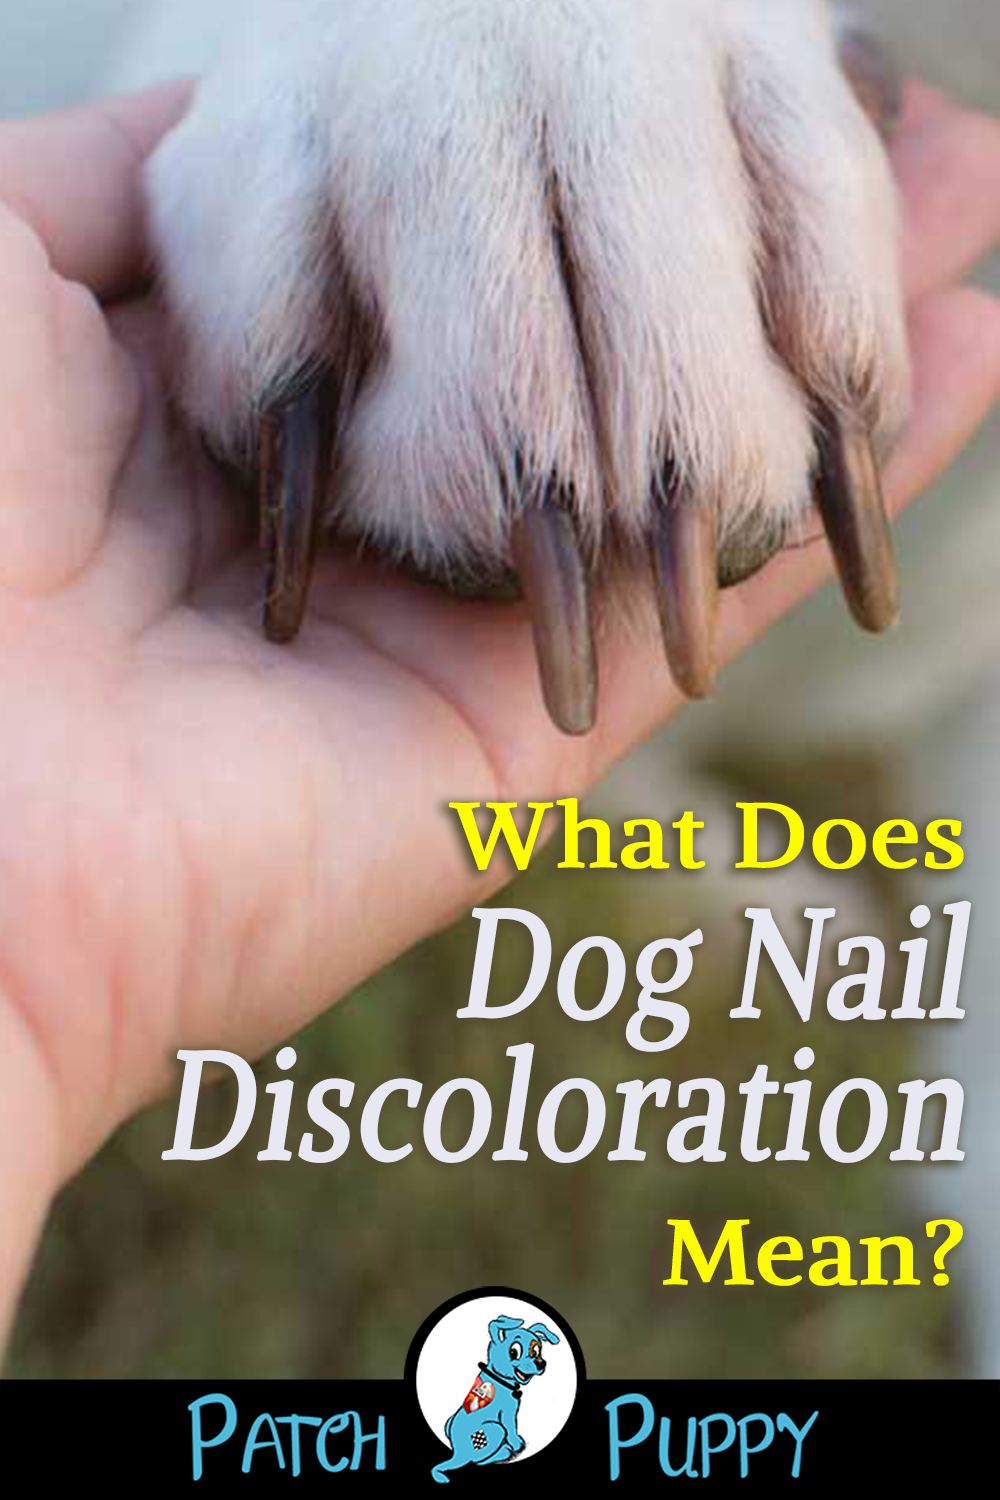 What Does Dog Nail Discoloration Mean Patchpuppy Com Dog Nails Nail Discoloration Dog Toenails